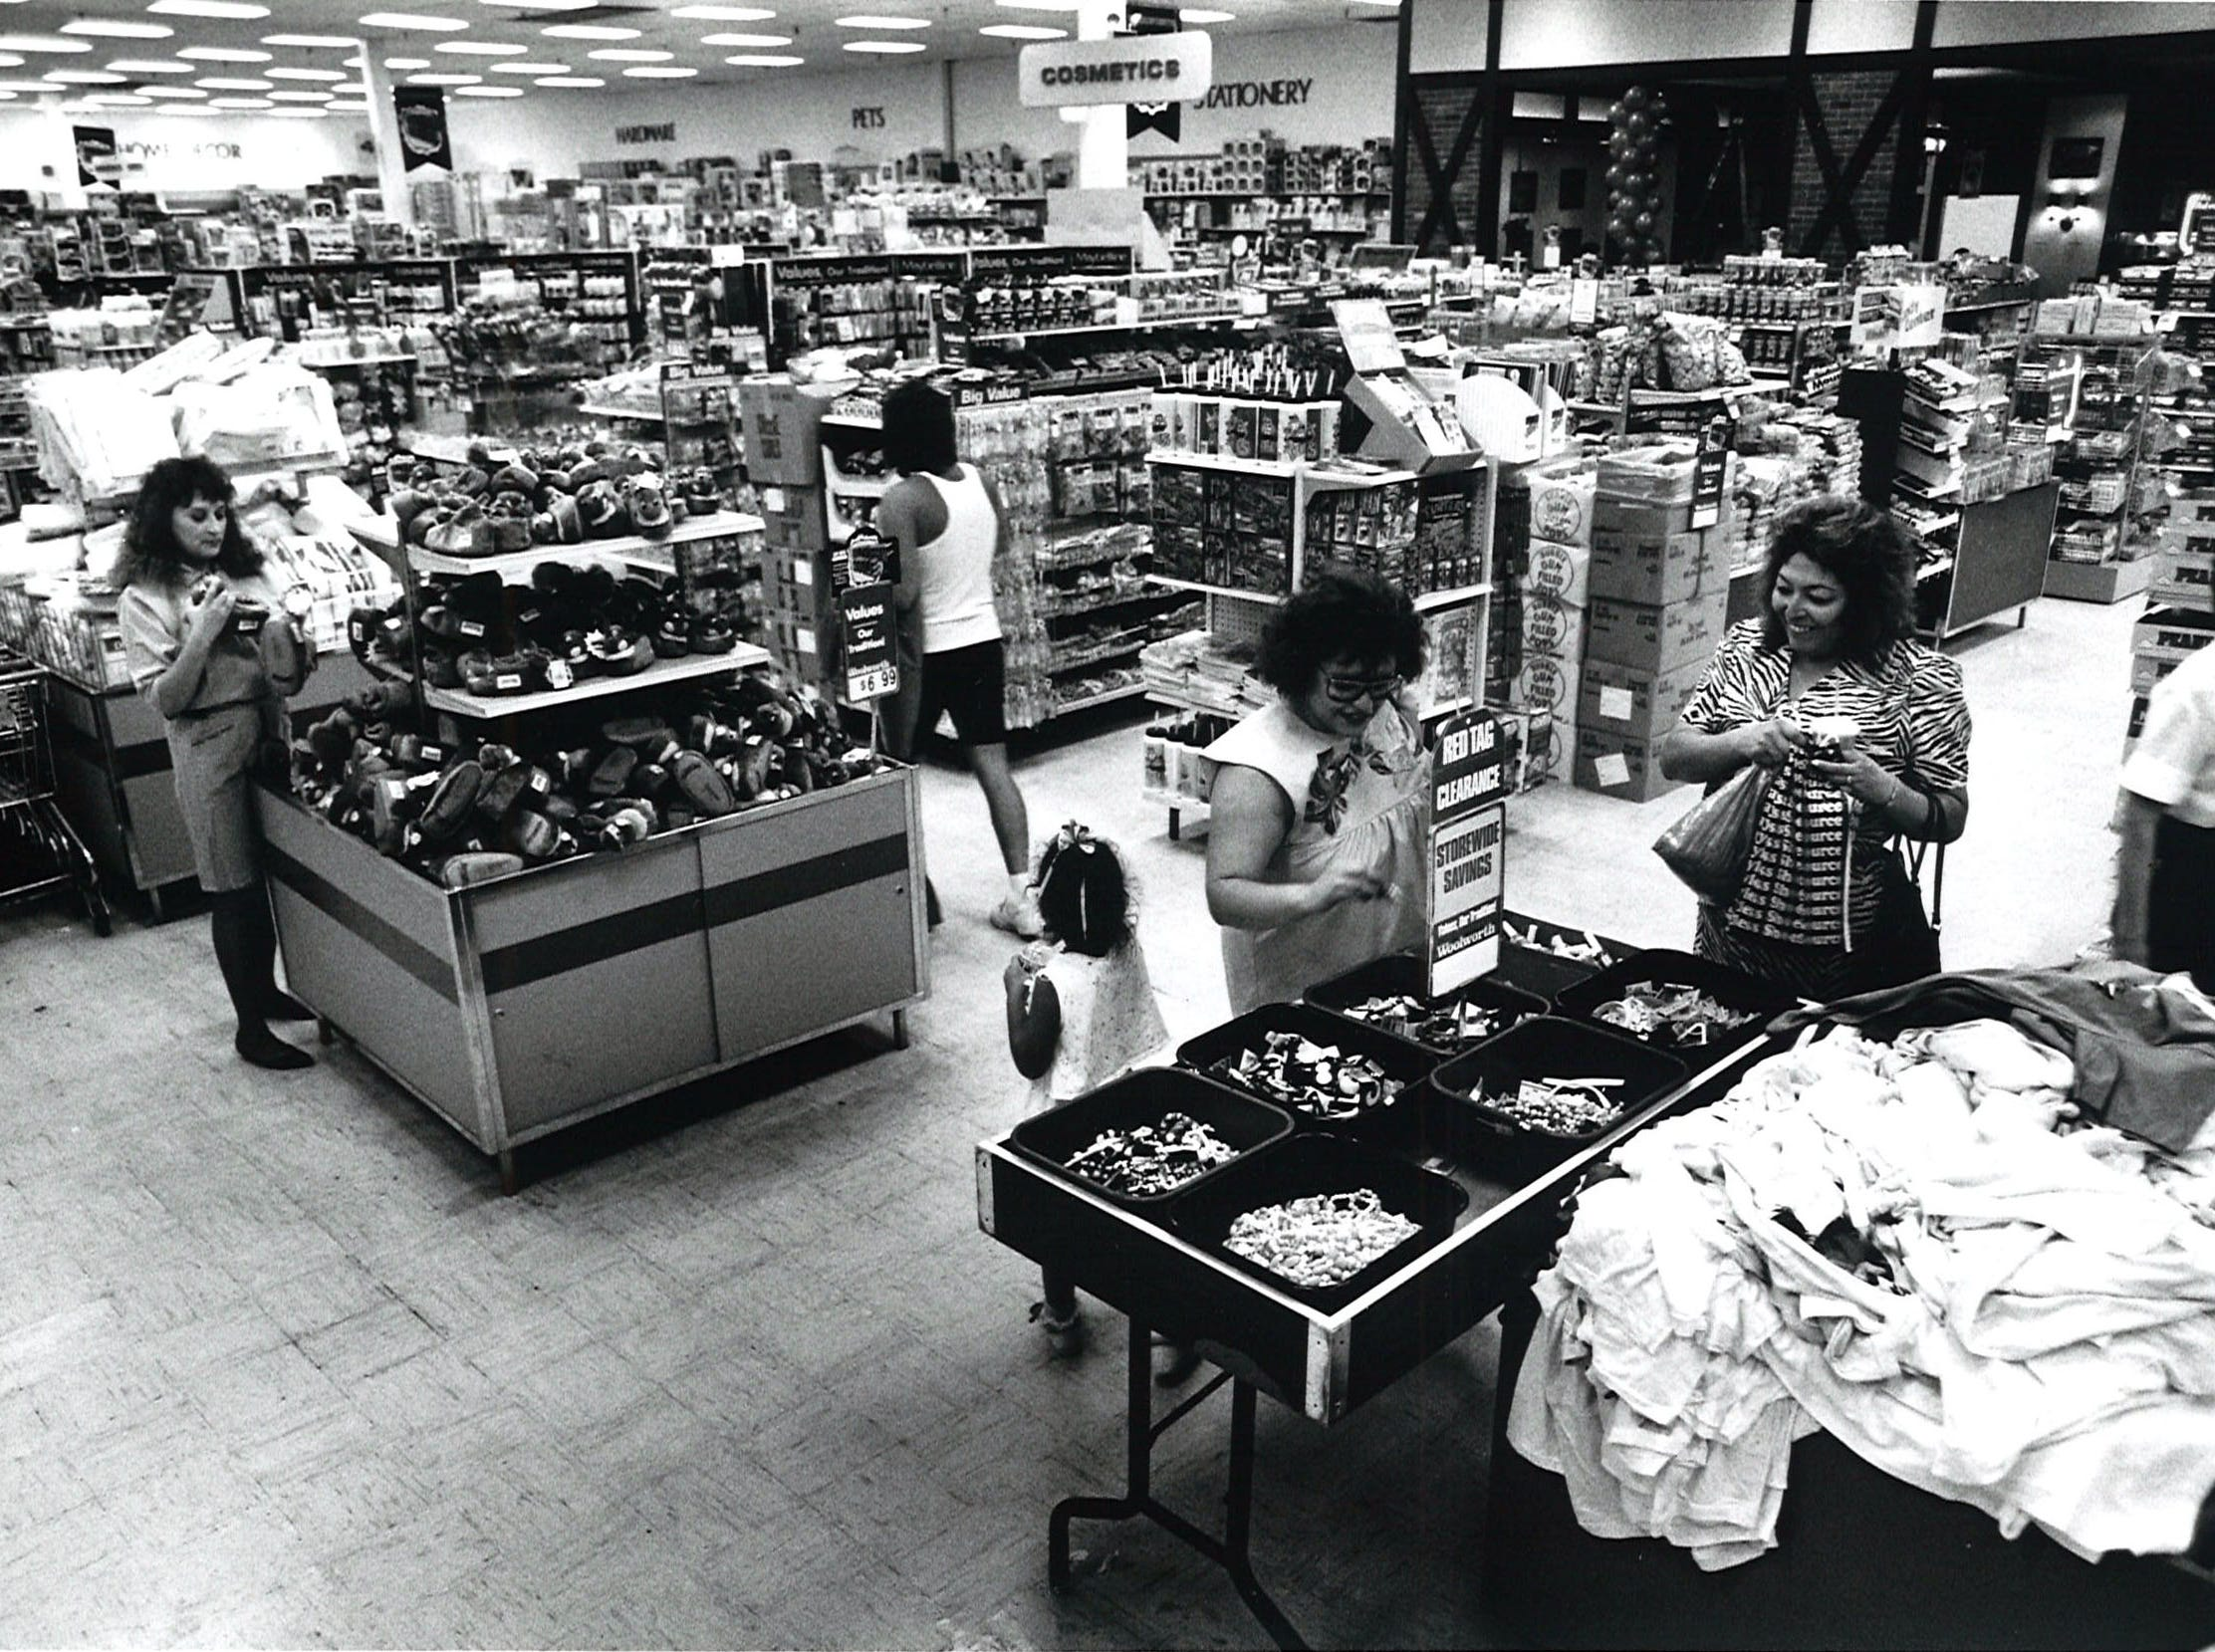 The F. W. Woolworth's location inside Padre Staples Mall in Corpus Christi was still a prosperous location when this photo was taken in August 1990.